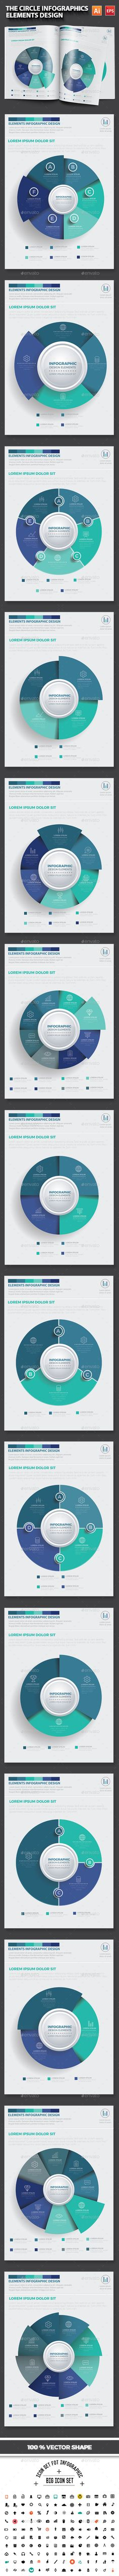 The Circle Infographic Design